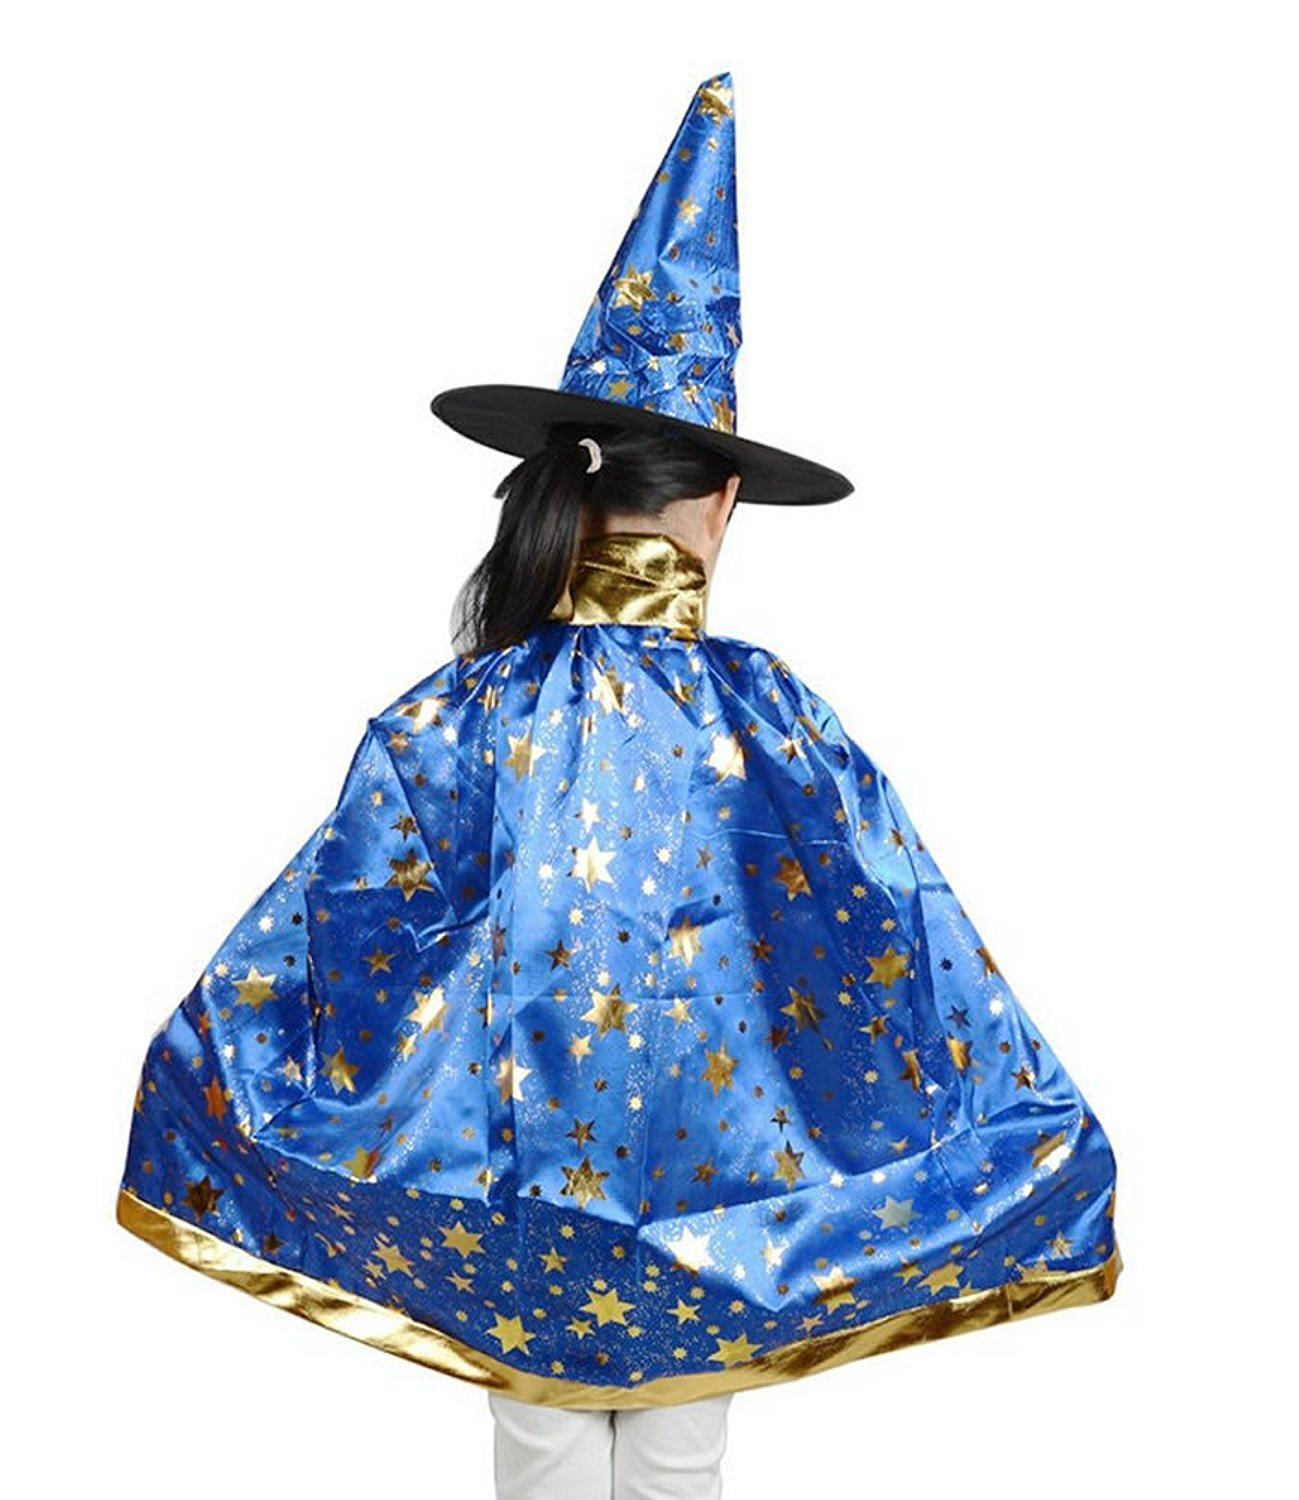 6a36de7264f Get Quotations · Teddy Spirit Halloween Costumes Witch Wizard Cloak with Hat  for Kids Boys Girls